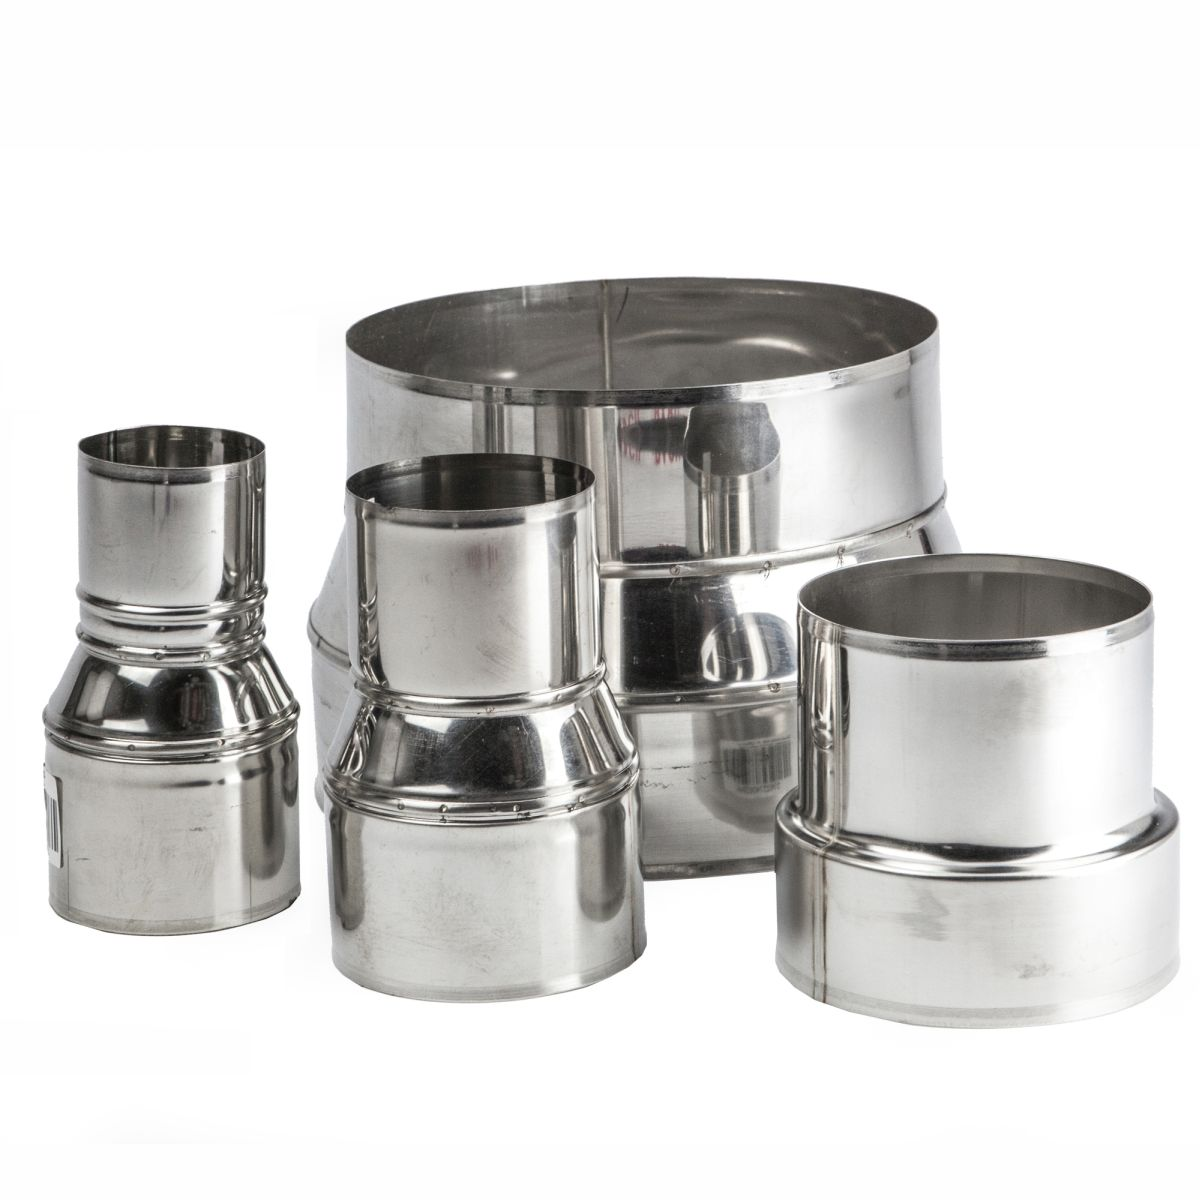 Stainless Steel Flat Collar Top Plate Pipes Stove Chimney